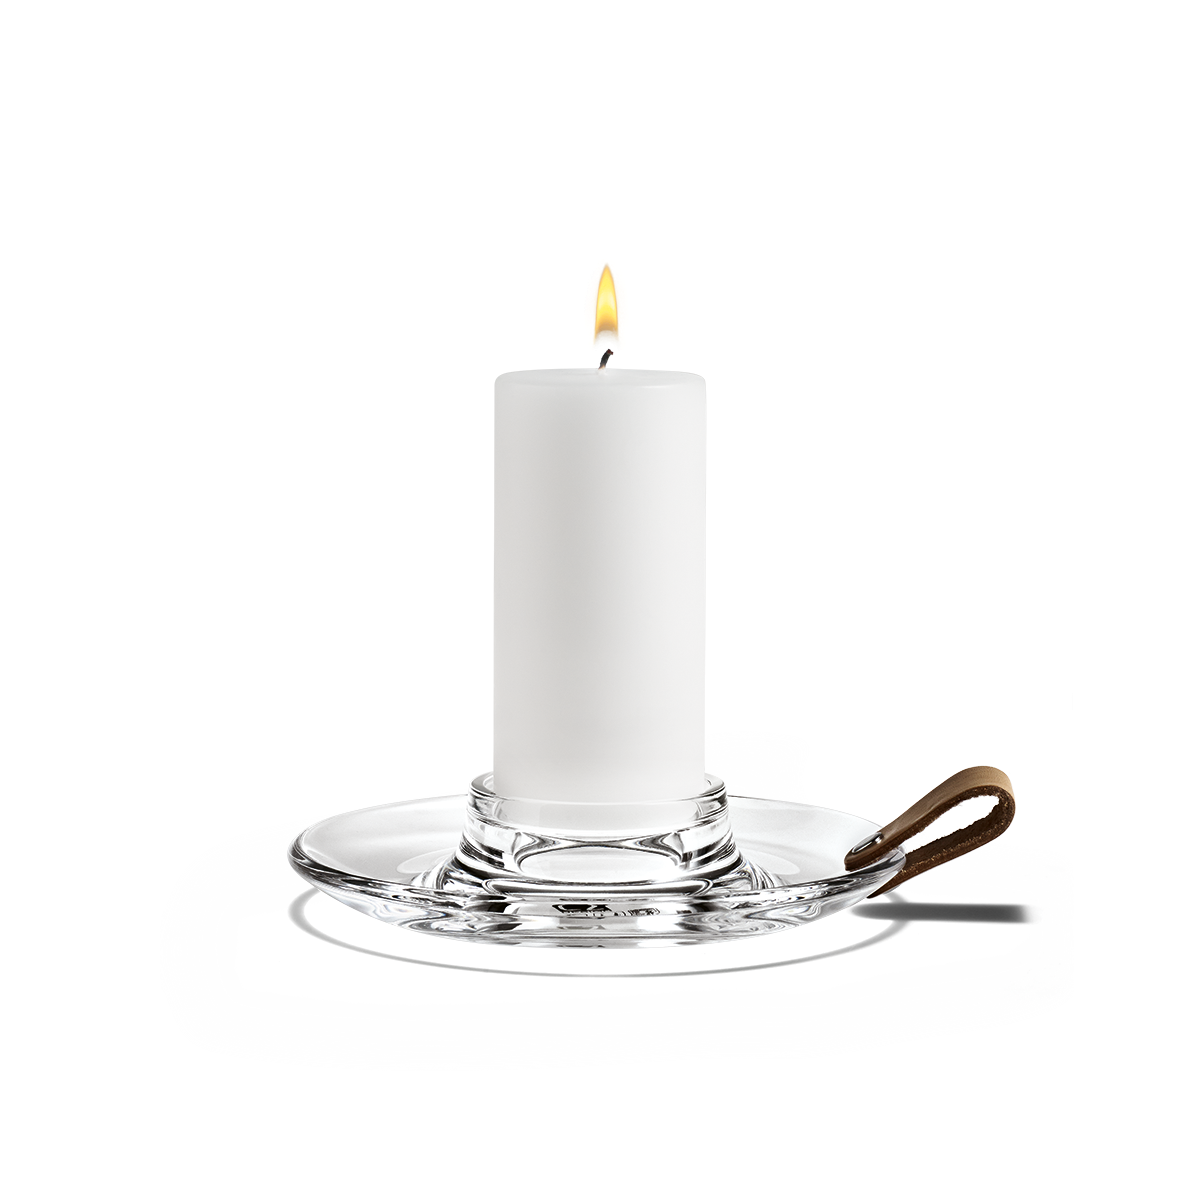 Candleholder For Pillar Candles O 17 Cm